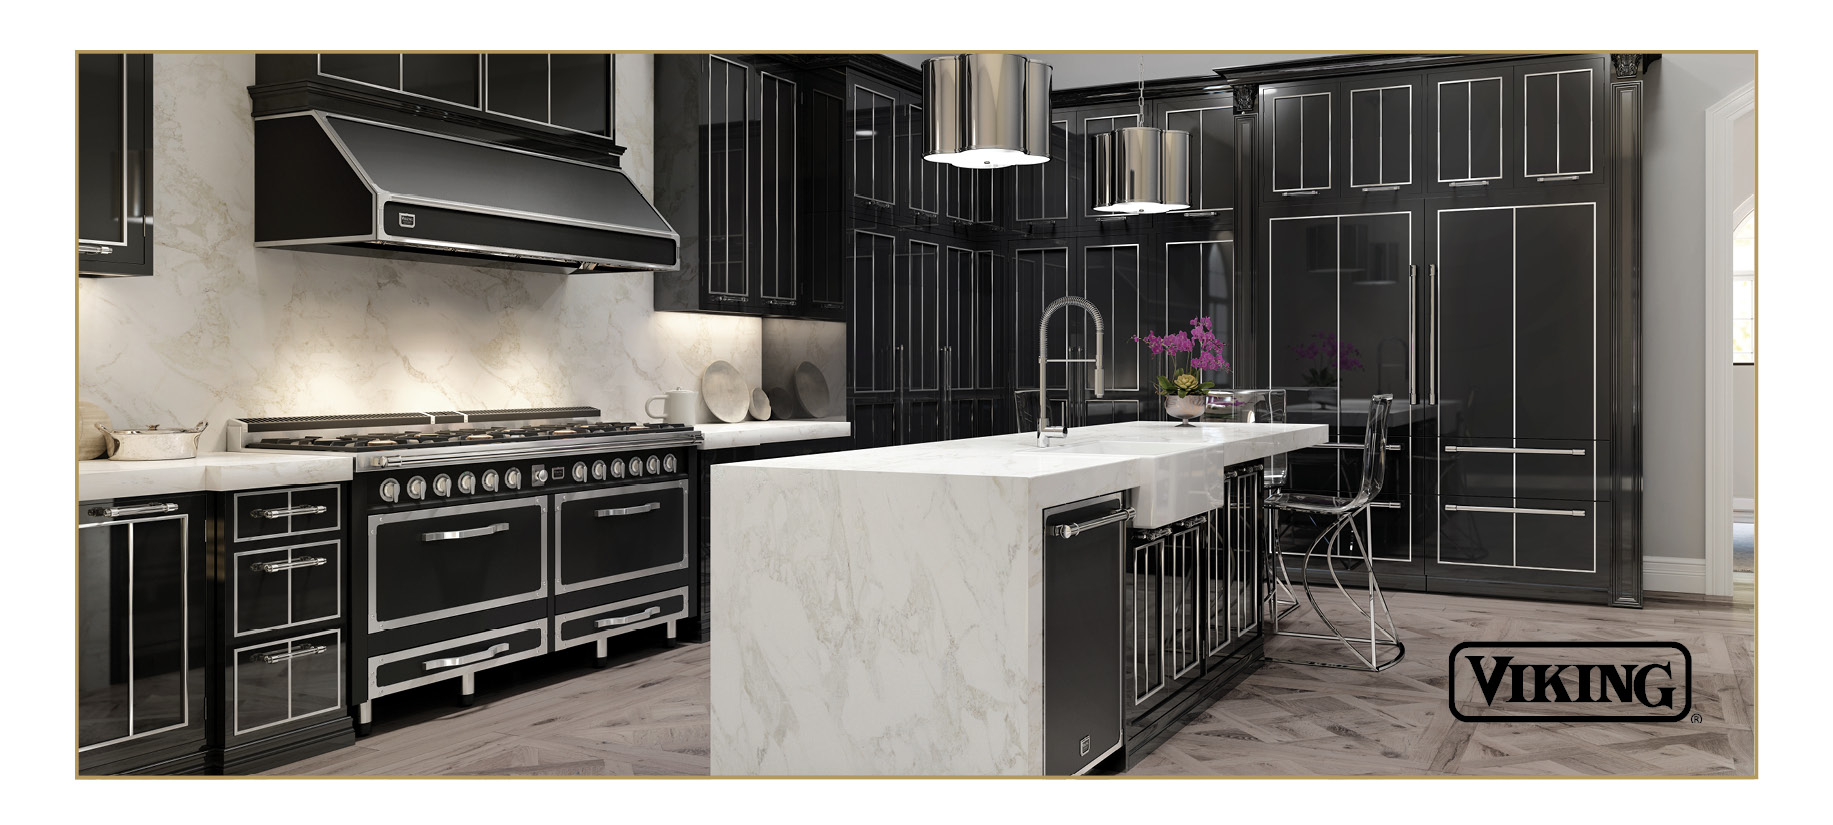 Viking Tuscany Range in black with silver accents. Range hood in the same color scheme. Black and silver kitchen.